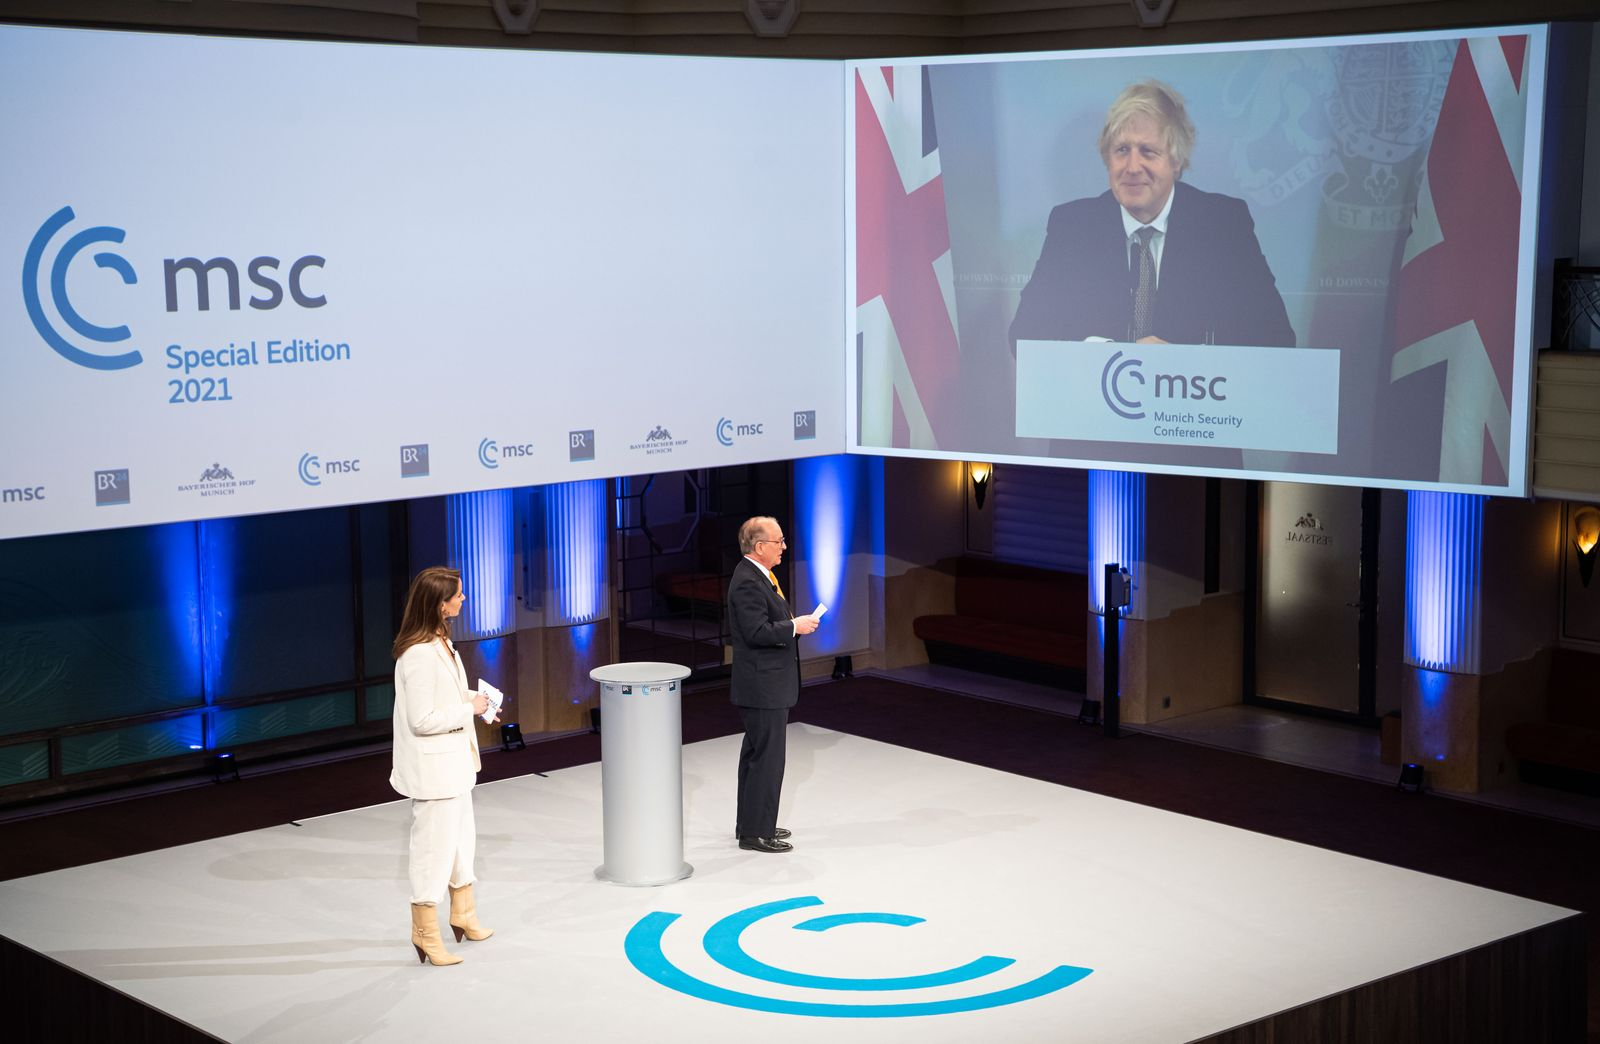 Munich Security Conference 2021 Special Edition, Germany - 19 Feb 2021